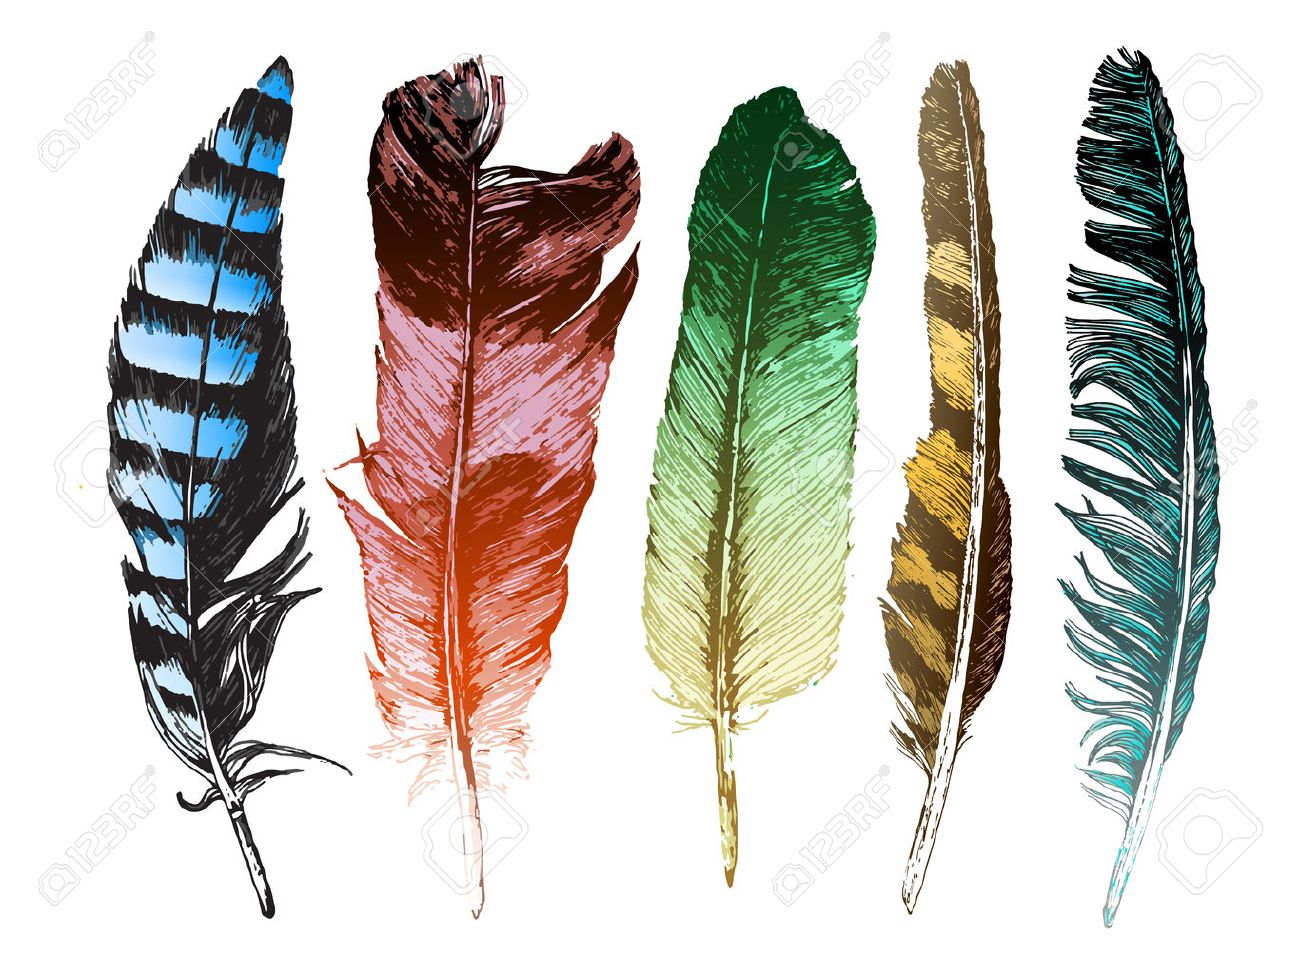 5 colorful hand drawn feathers on white background - 44033591